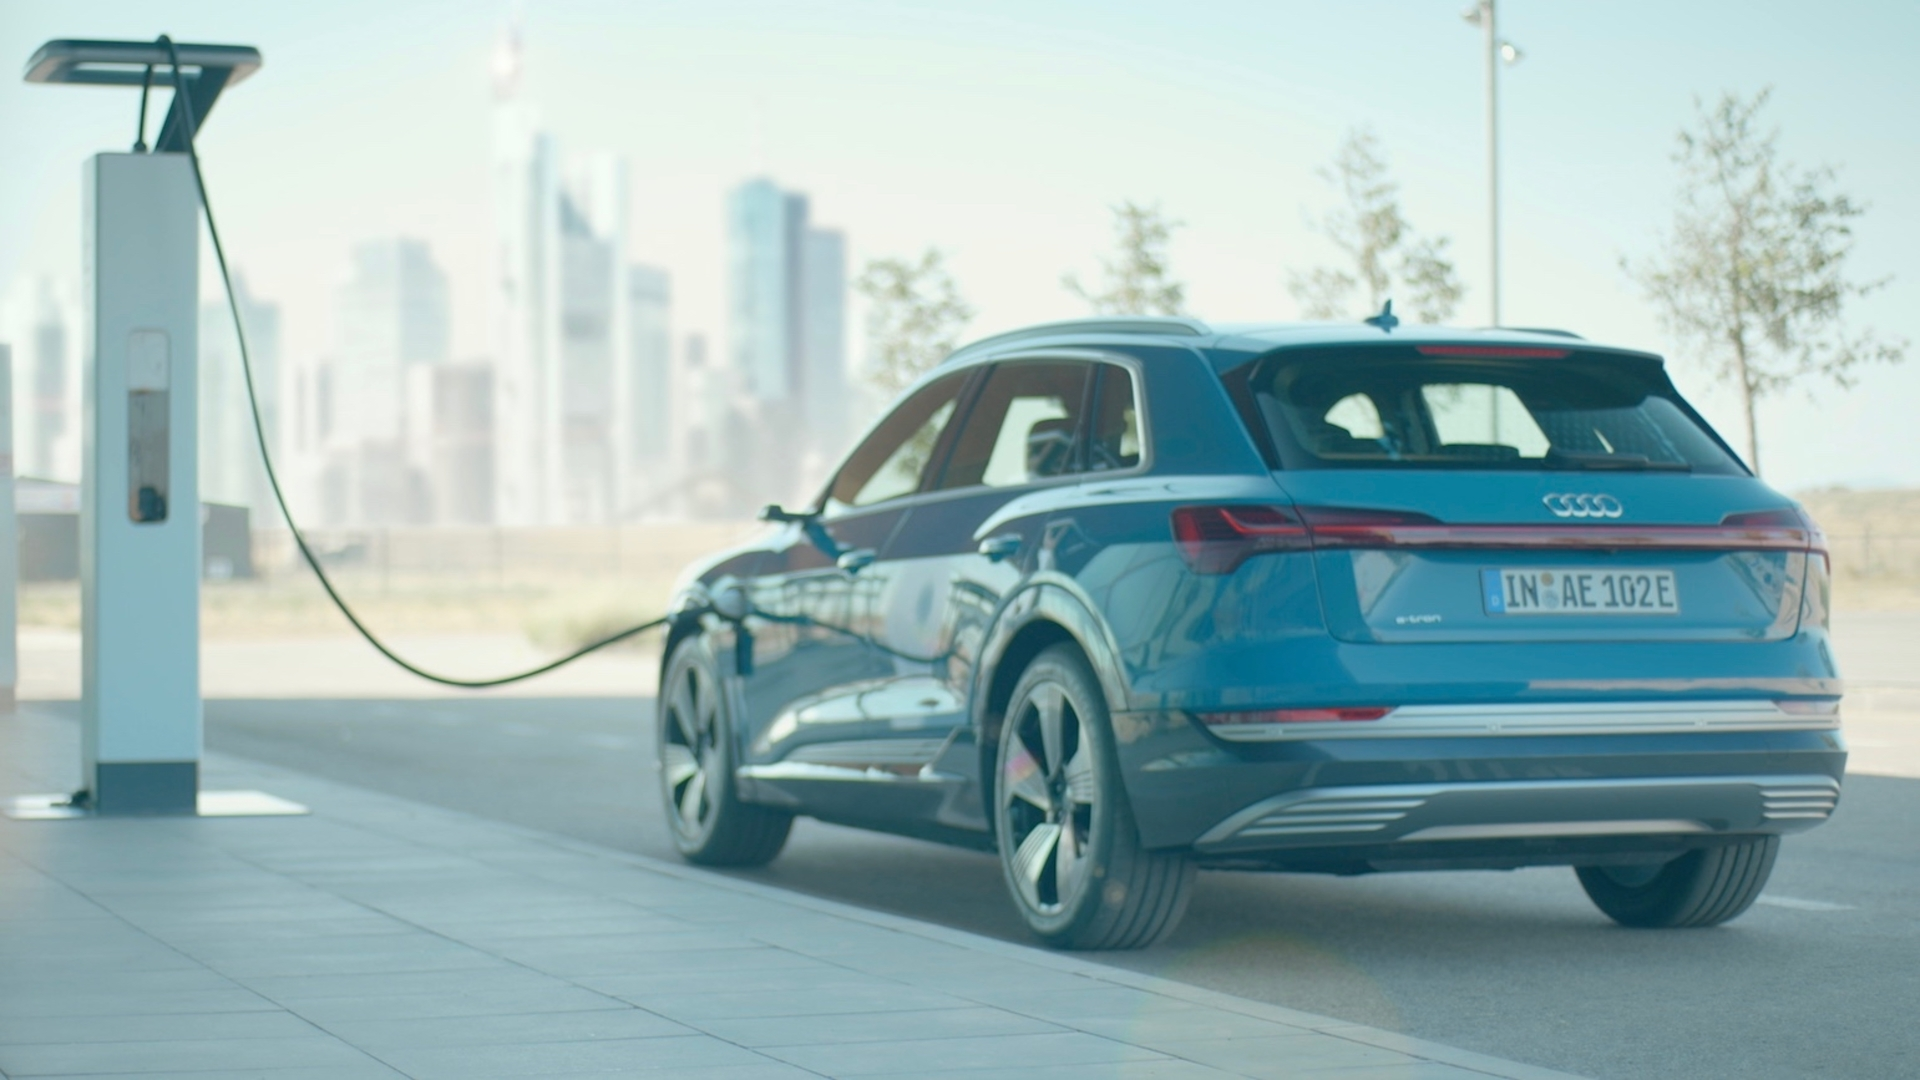 Audi e-tron: the next stage of electric mobility